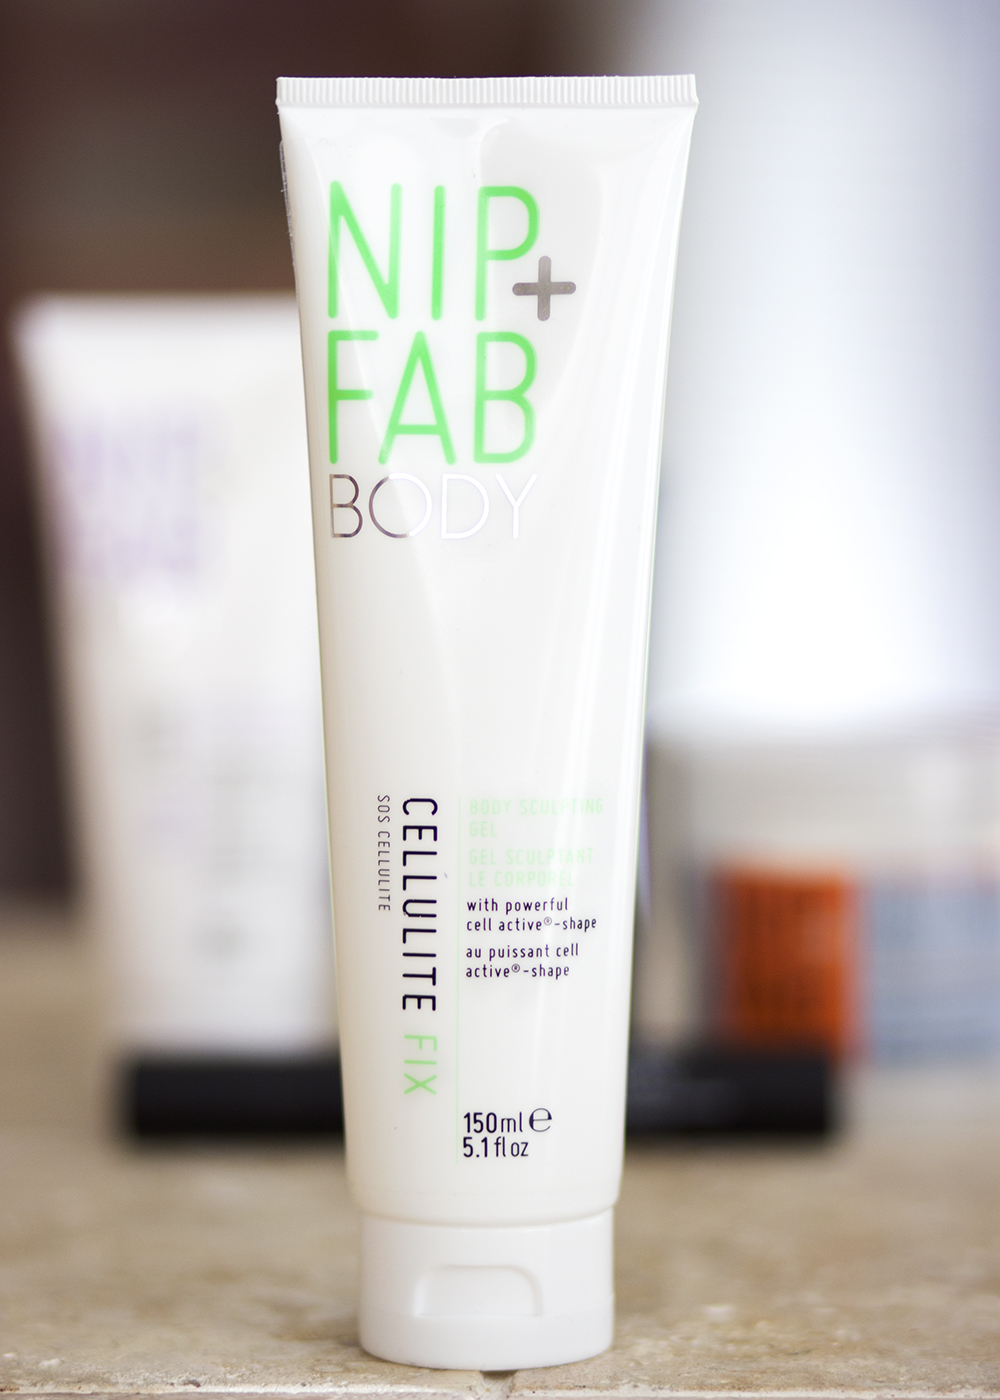 Rodial and Nip + Fab Beauty - Nip + Fab Body Cellulite Fix Body Sculpting Gel - Rodial Nip Fab Beauty Review